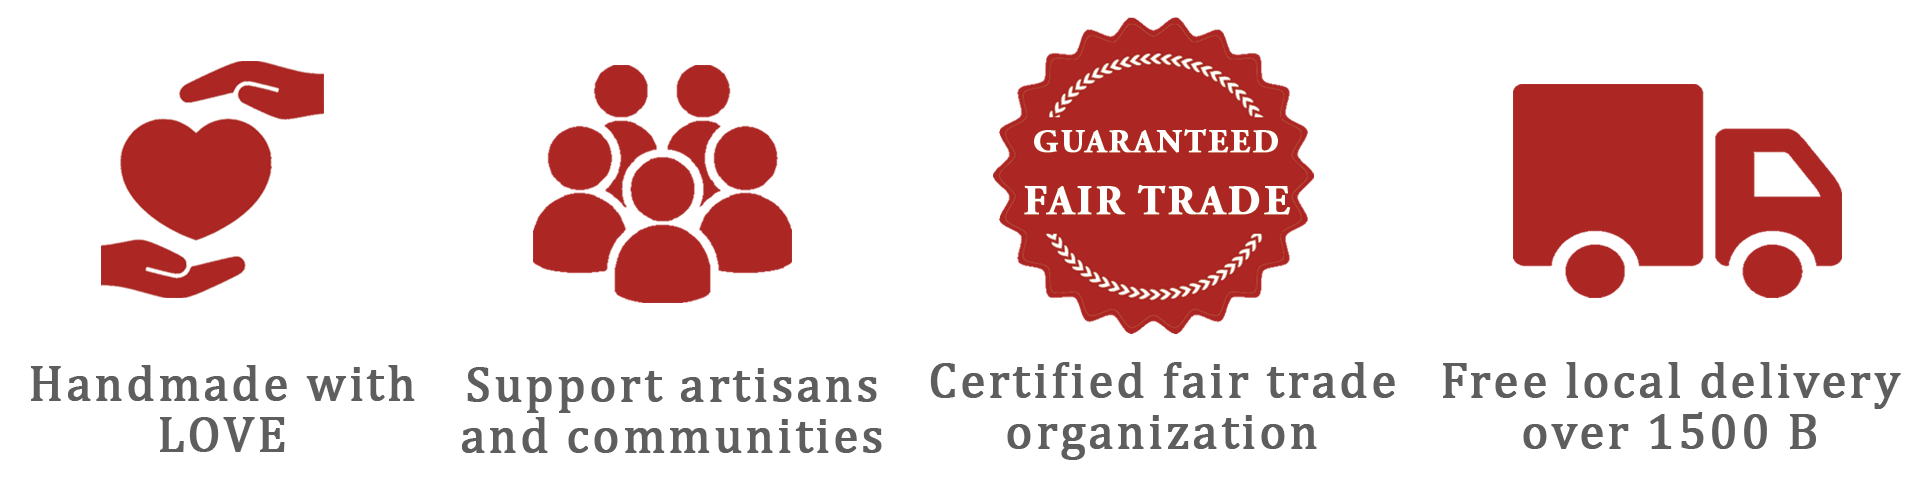 fair trade wholesale